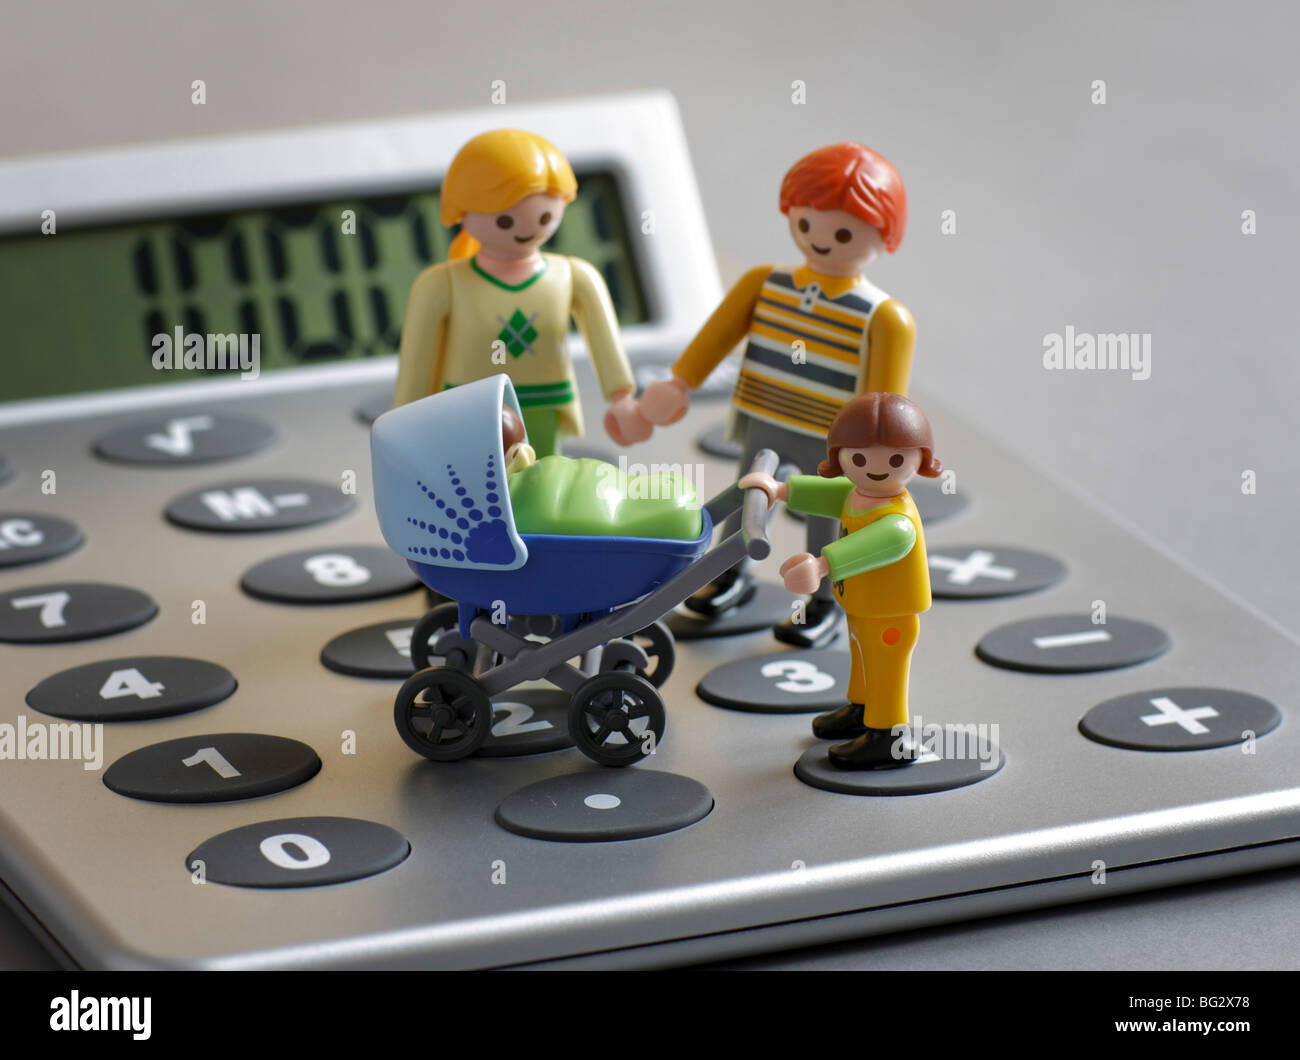 Playmobil toys on a calculater . Stock Photo